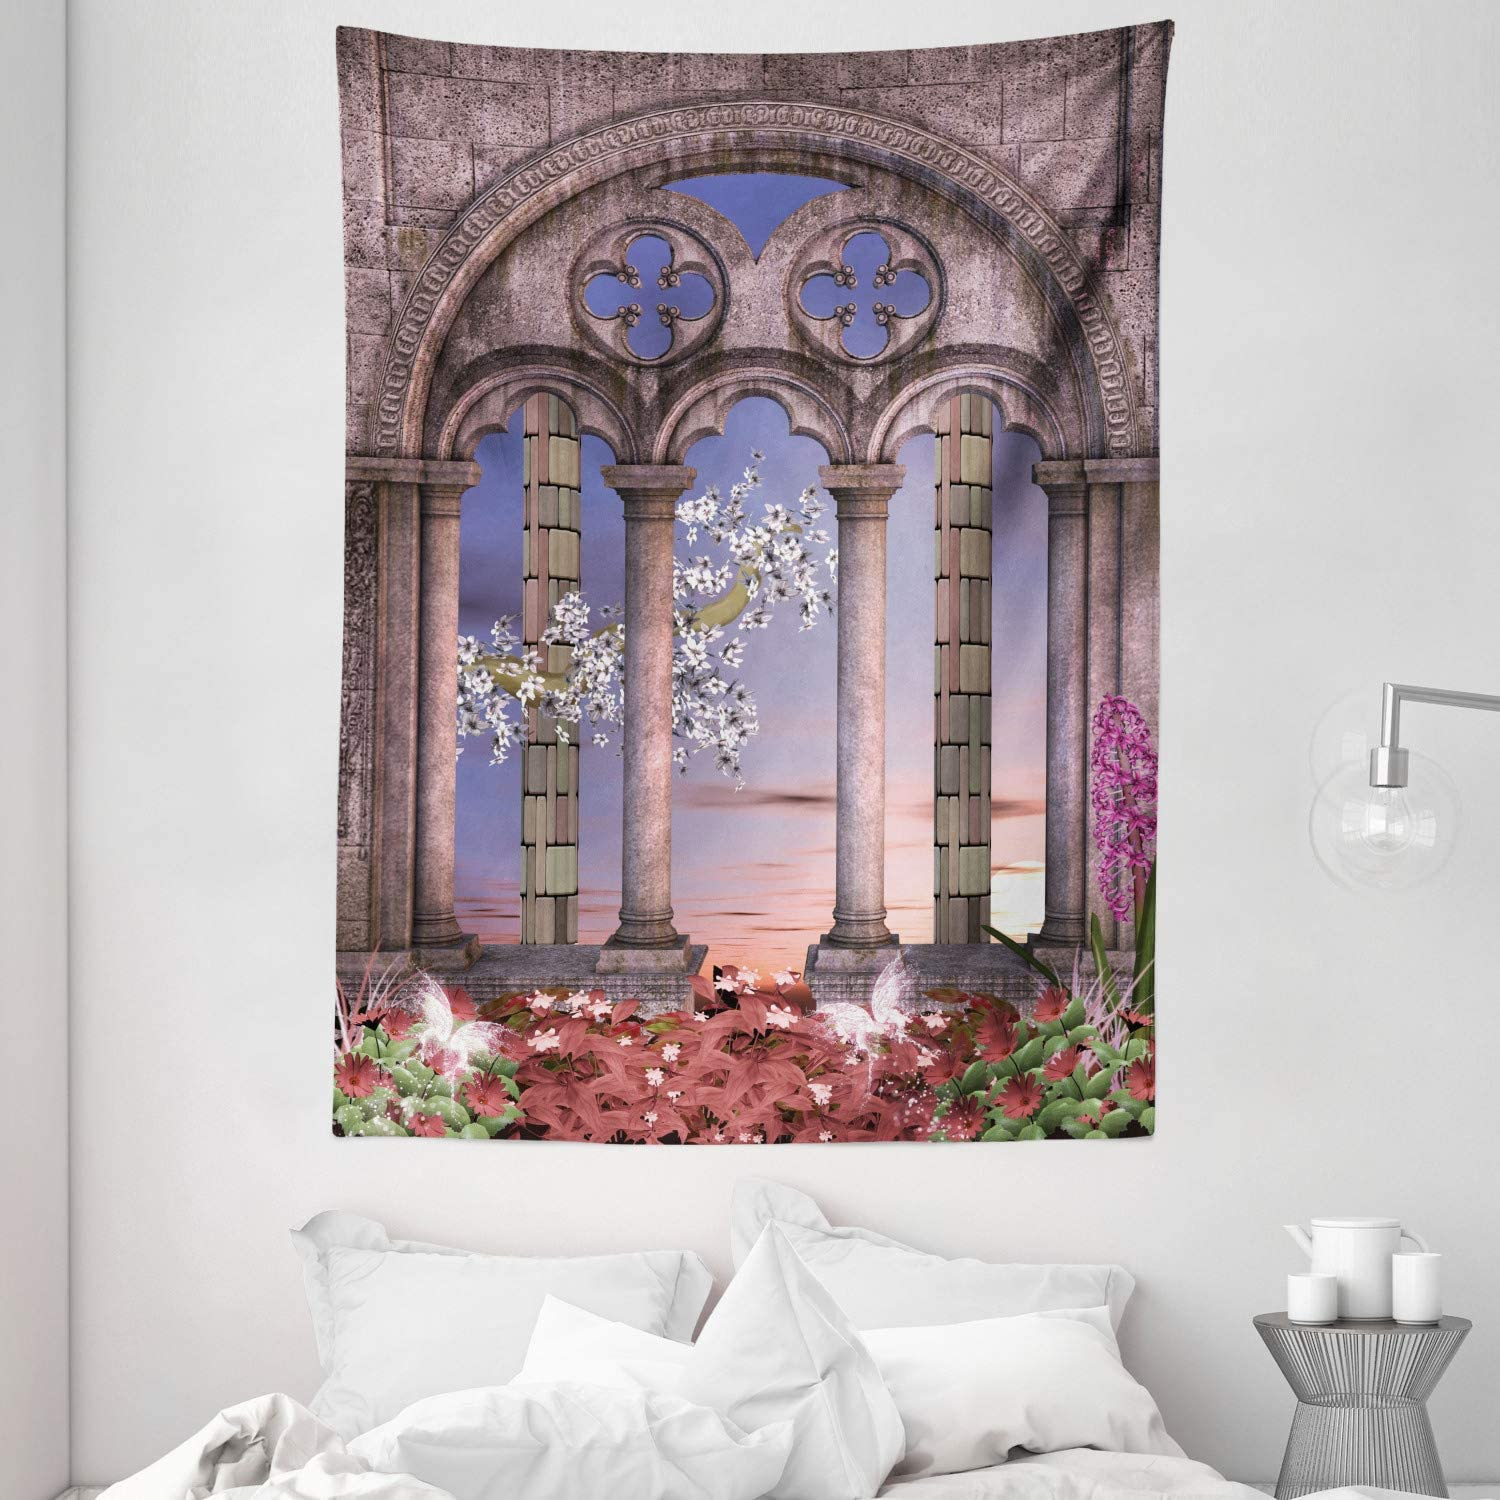 """Ambesonne Gothic Tapestry, Colonnade in Secret Garden with Flowers at Sunset Enchanted Forest, Wall Hanging for Bedroom Living Room Dorm, 60"""" X 80"""", Grey Blue Lilac Red"""